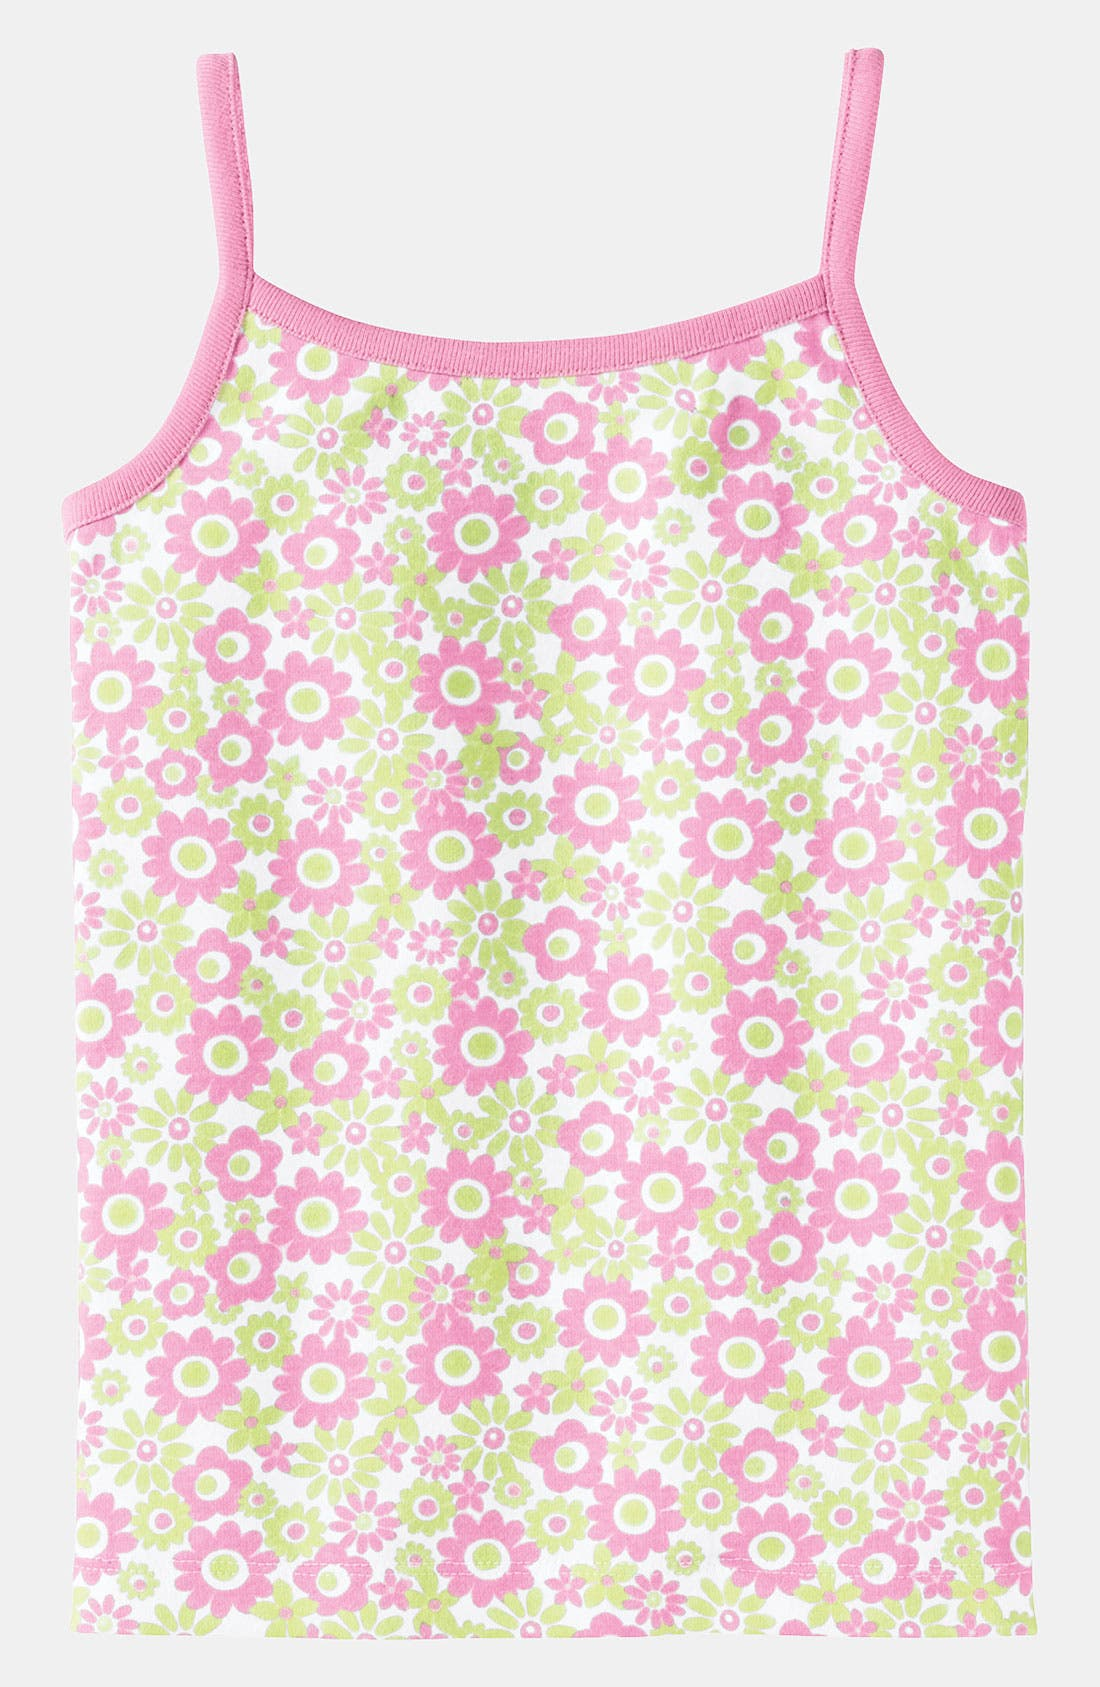 Alternate Image 1 Selected - Hanna Andersson Organic Cotton Camisole (Little Girls & Big Girls)